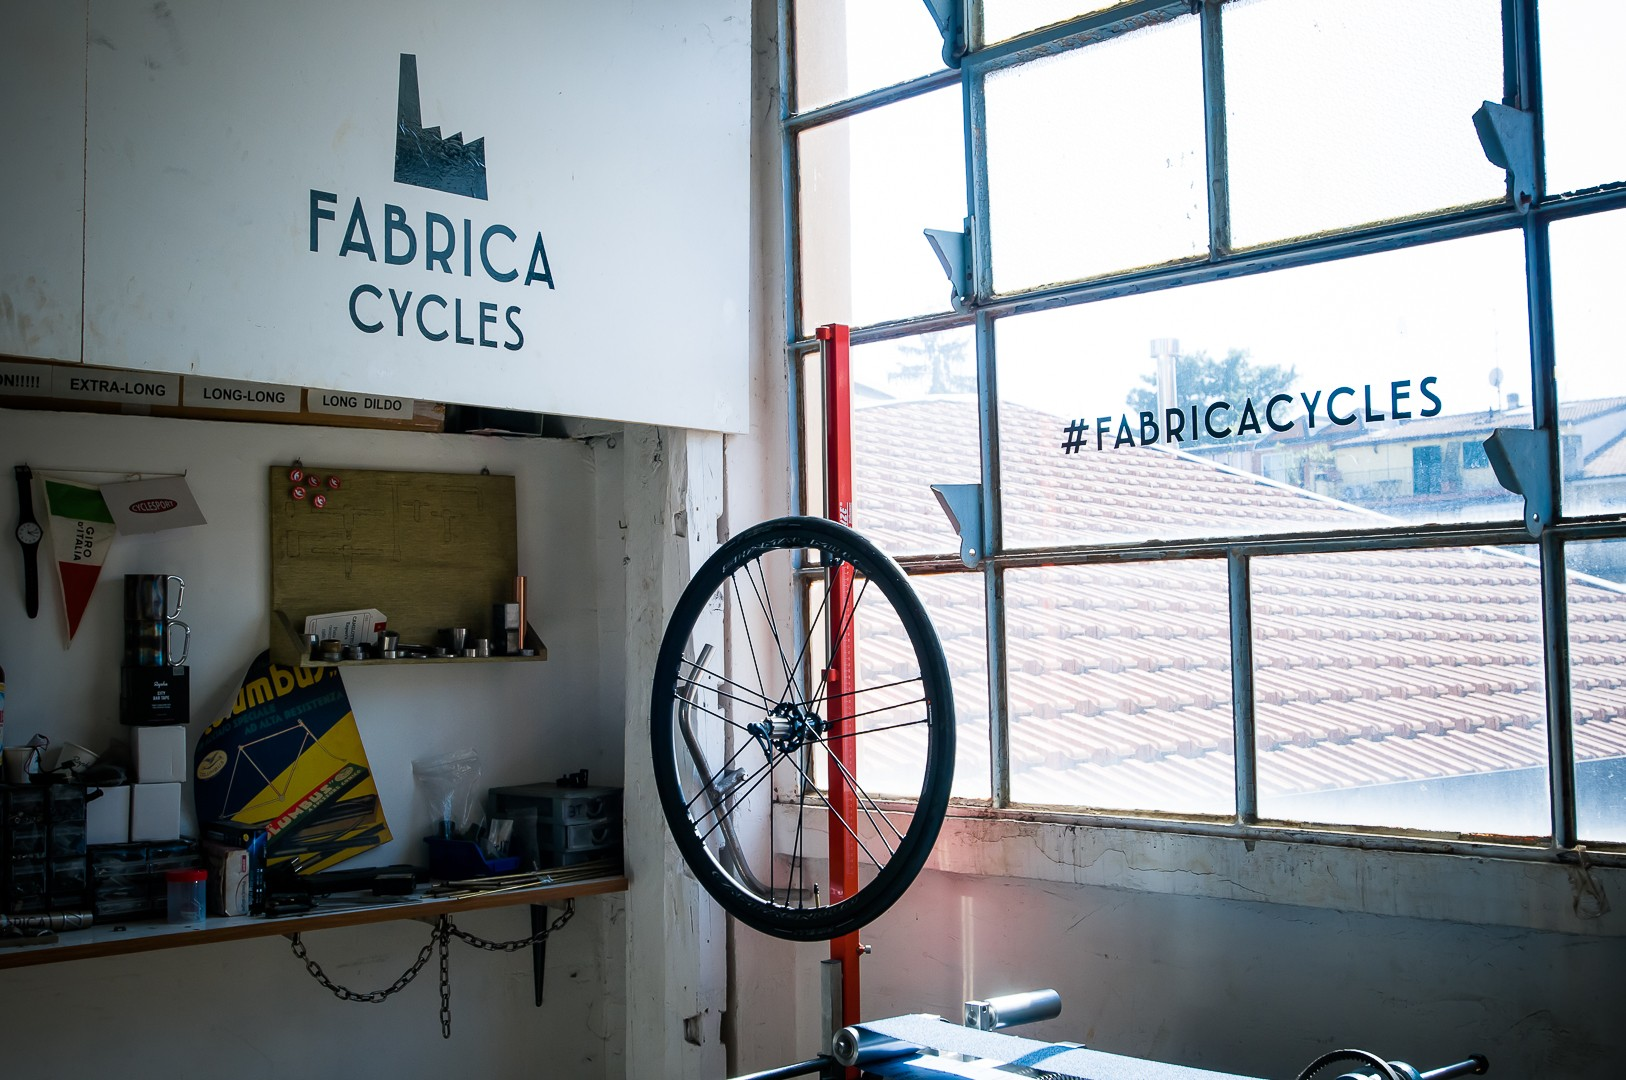 Fabrica Cycles